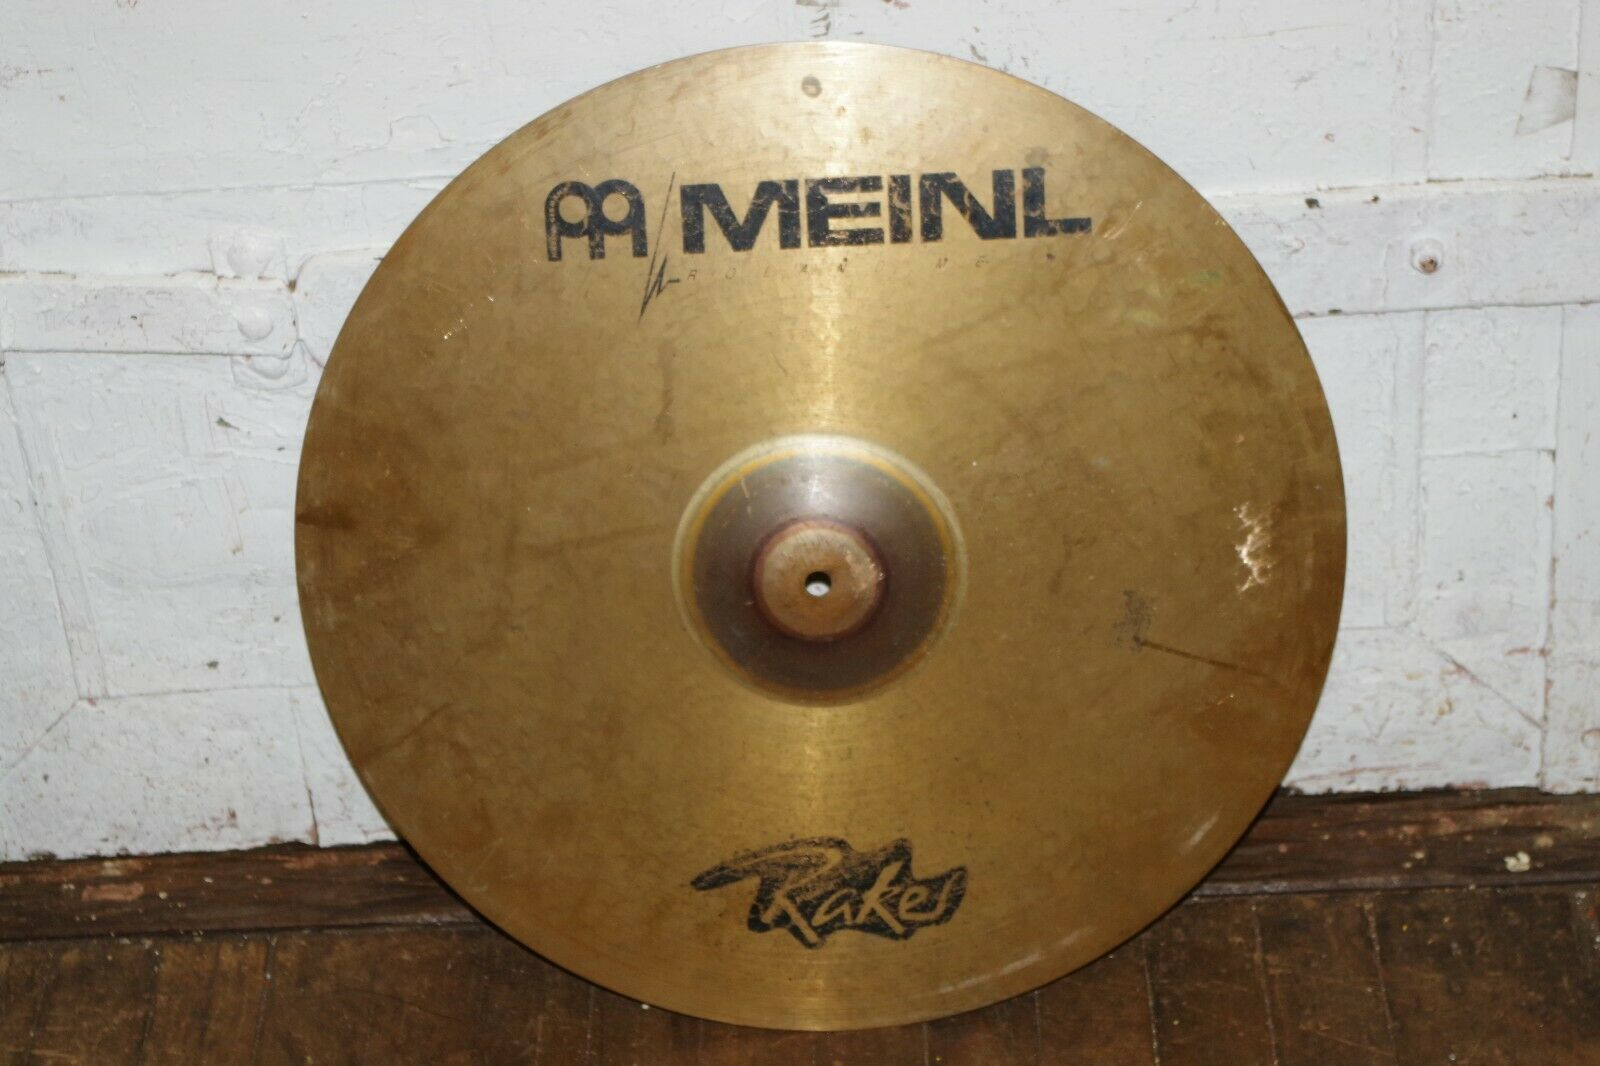 ROLAND MEINL Rakes 20  Medium Ride CYMBAL Made in Germany